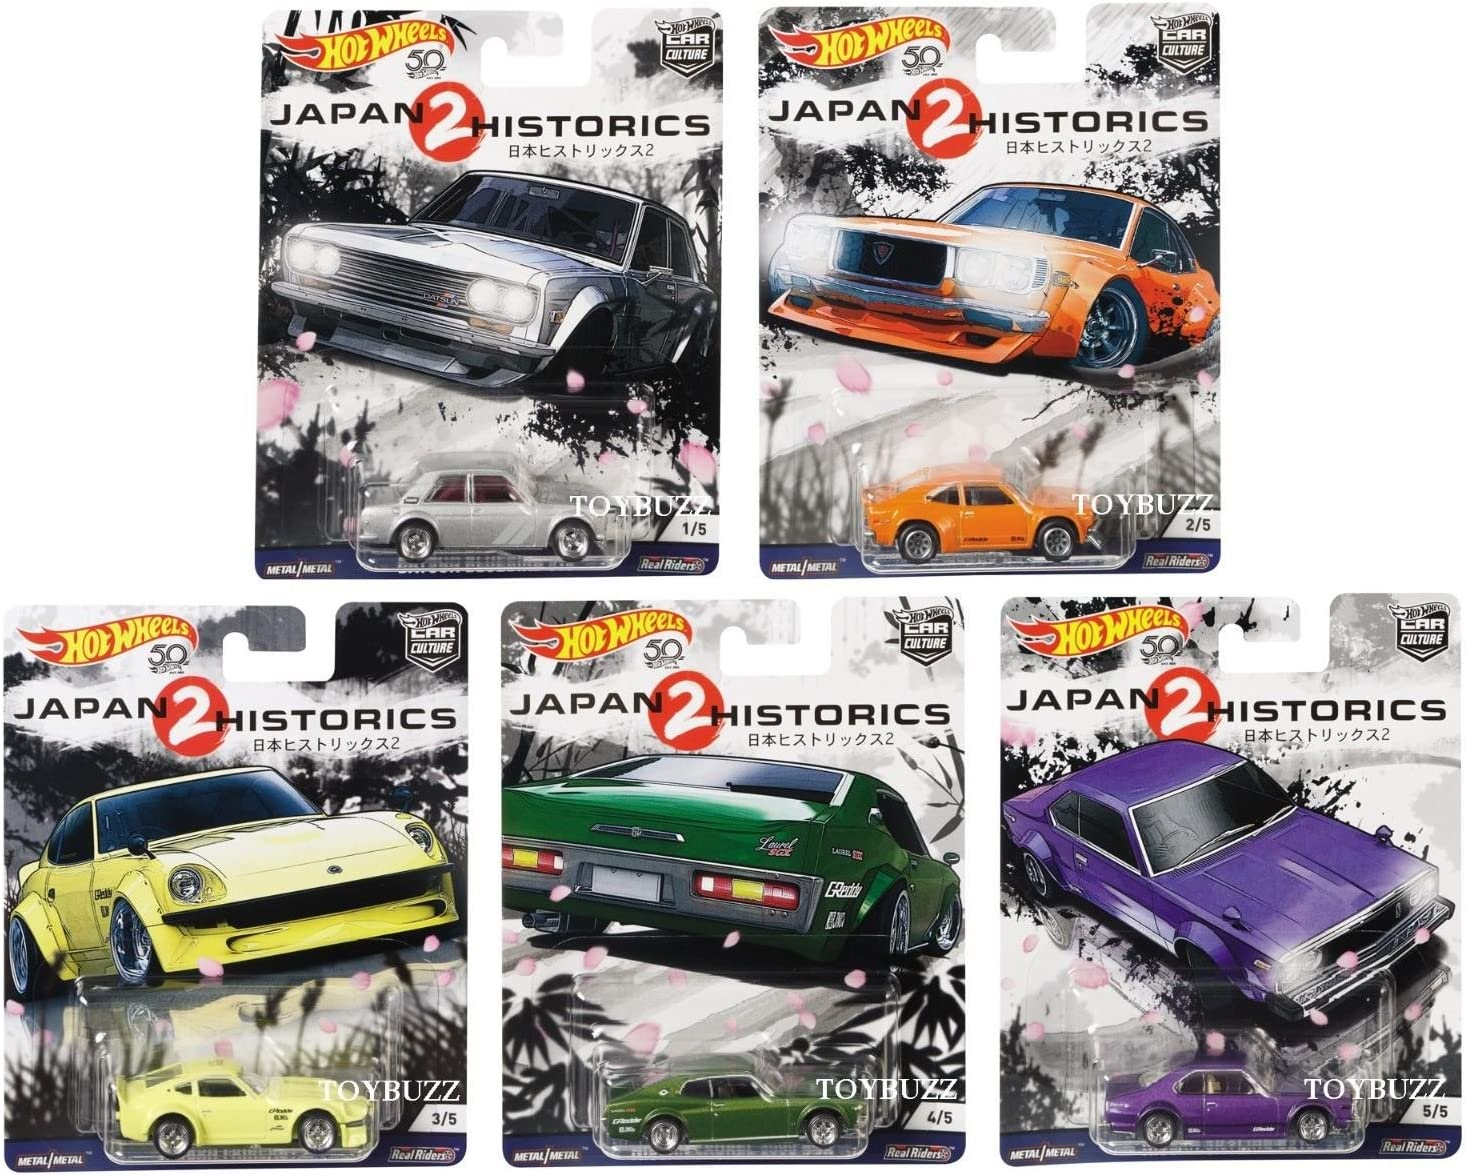 Hot Wheels 1:64 Car Culture Japan Historics 2 - Set Of 5